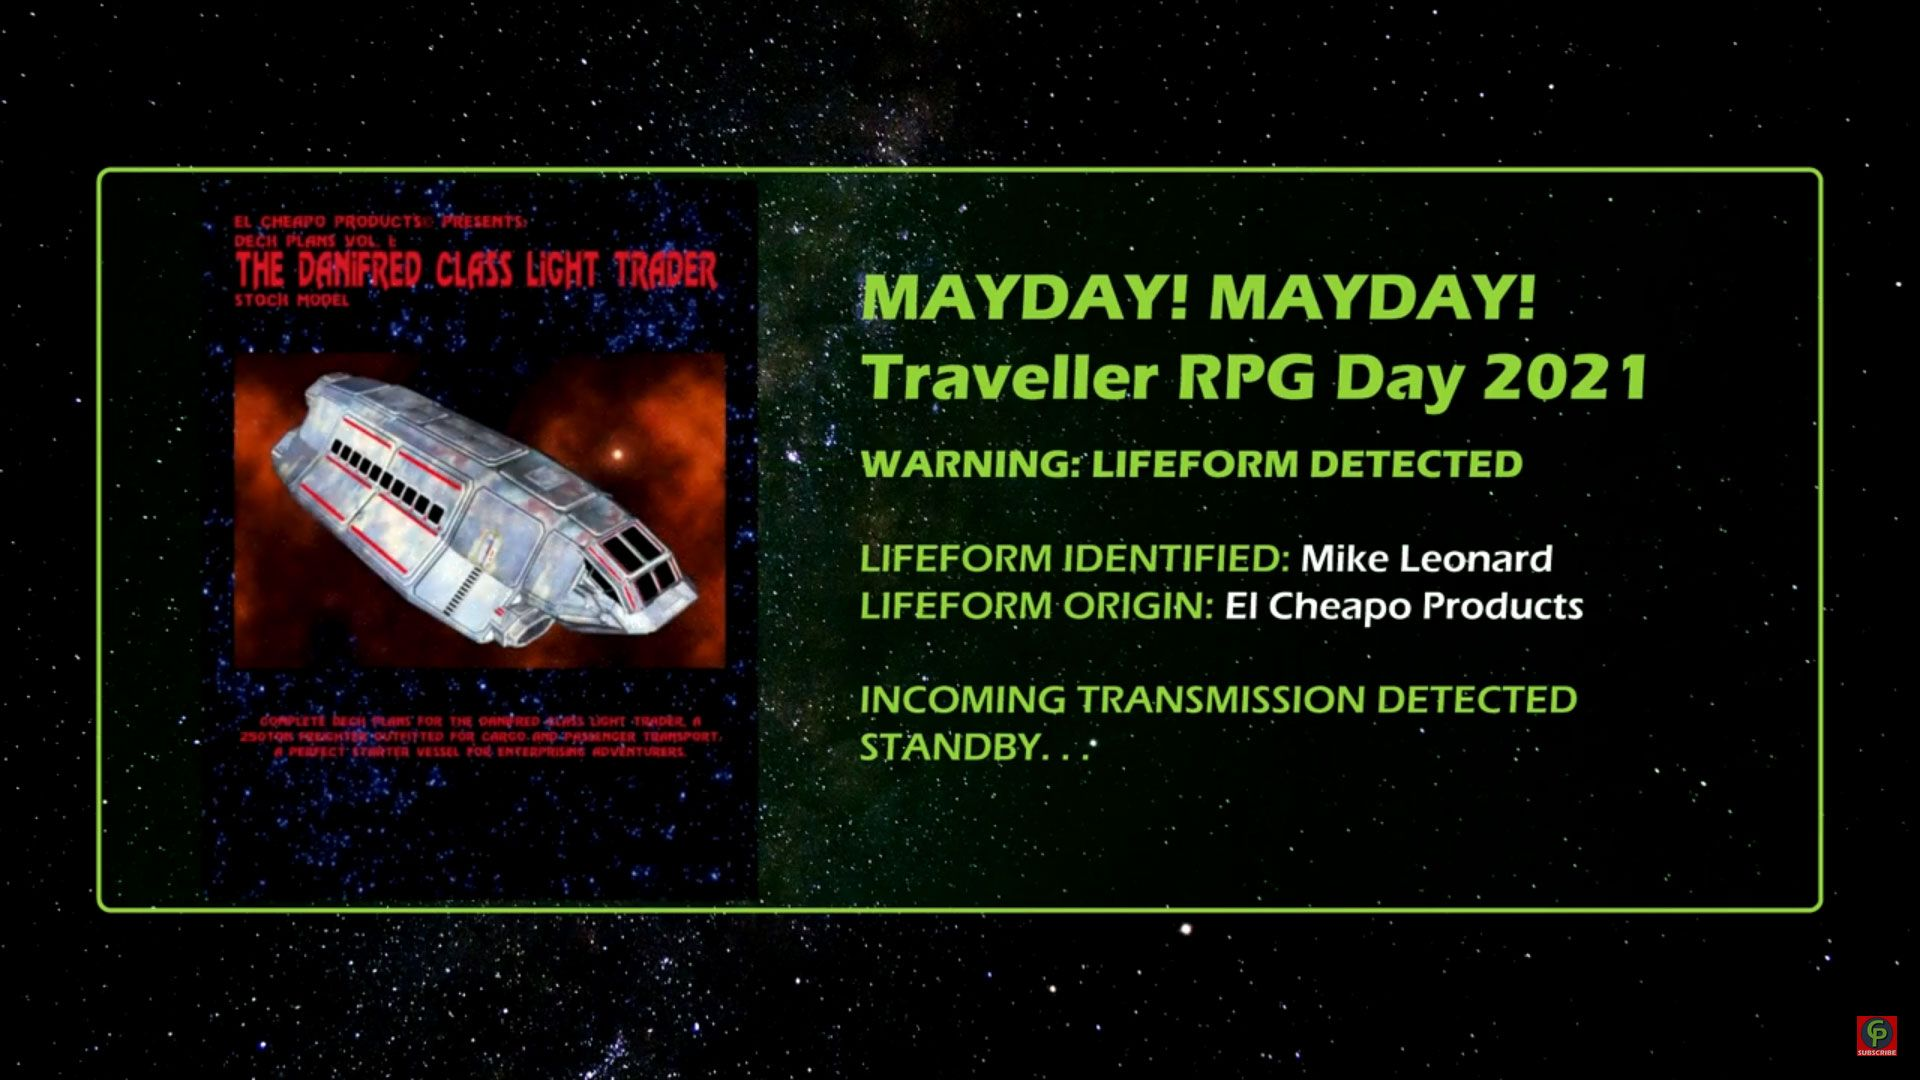 mike leonard of el cheapo products Interview Traveller RPG Mayday 2021 title